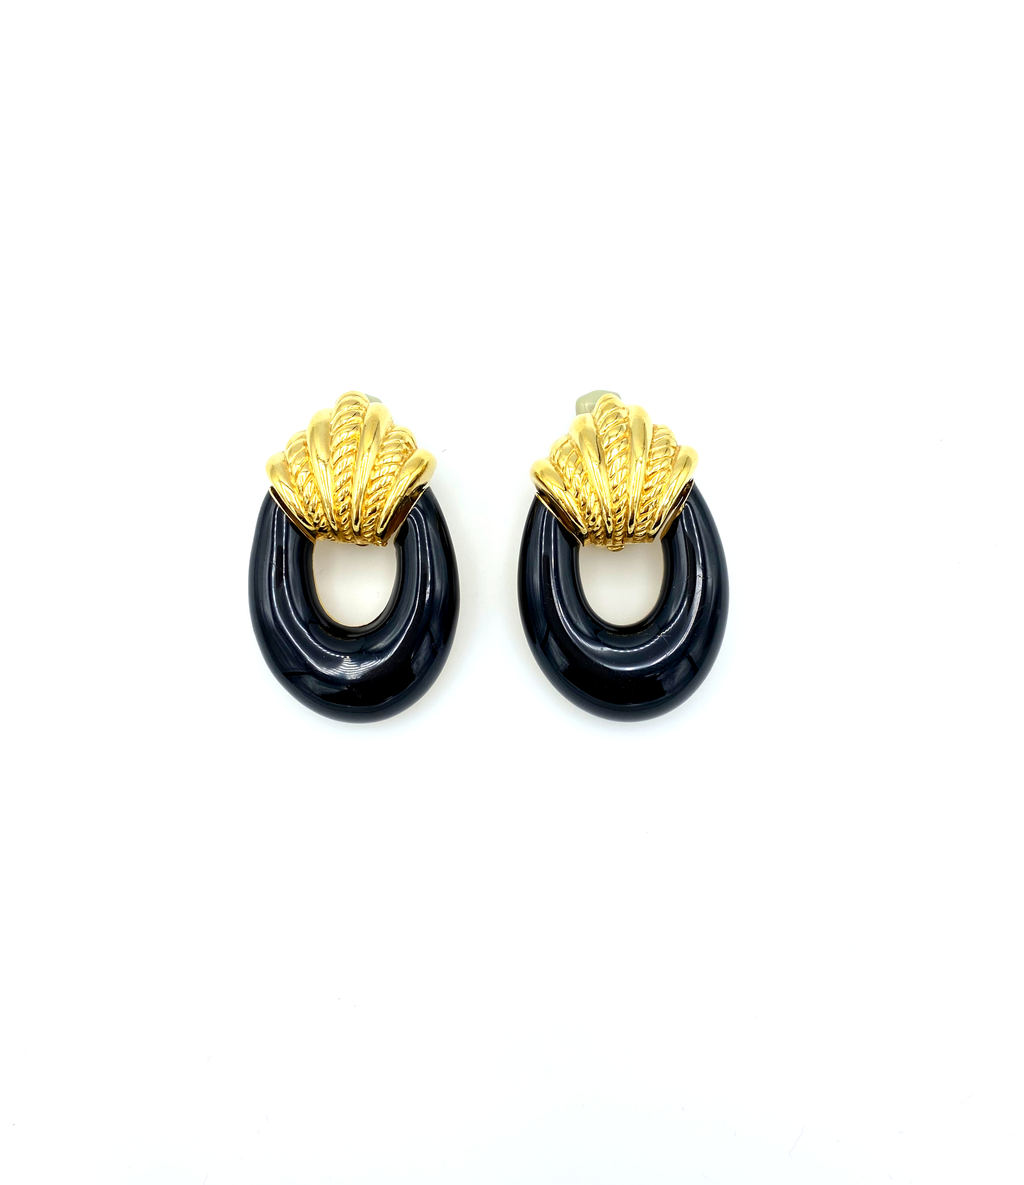 Ciner Gold & Black Enamel Doorknocker Vintage Earrings-Sustainable Fashion with Vintage Style-Trending Designer Fashion-24 Wishes